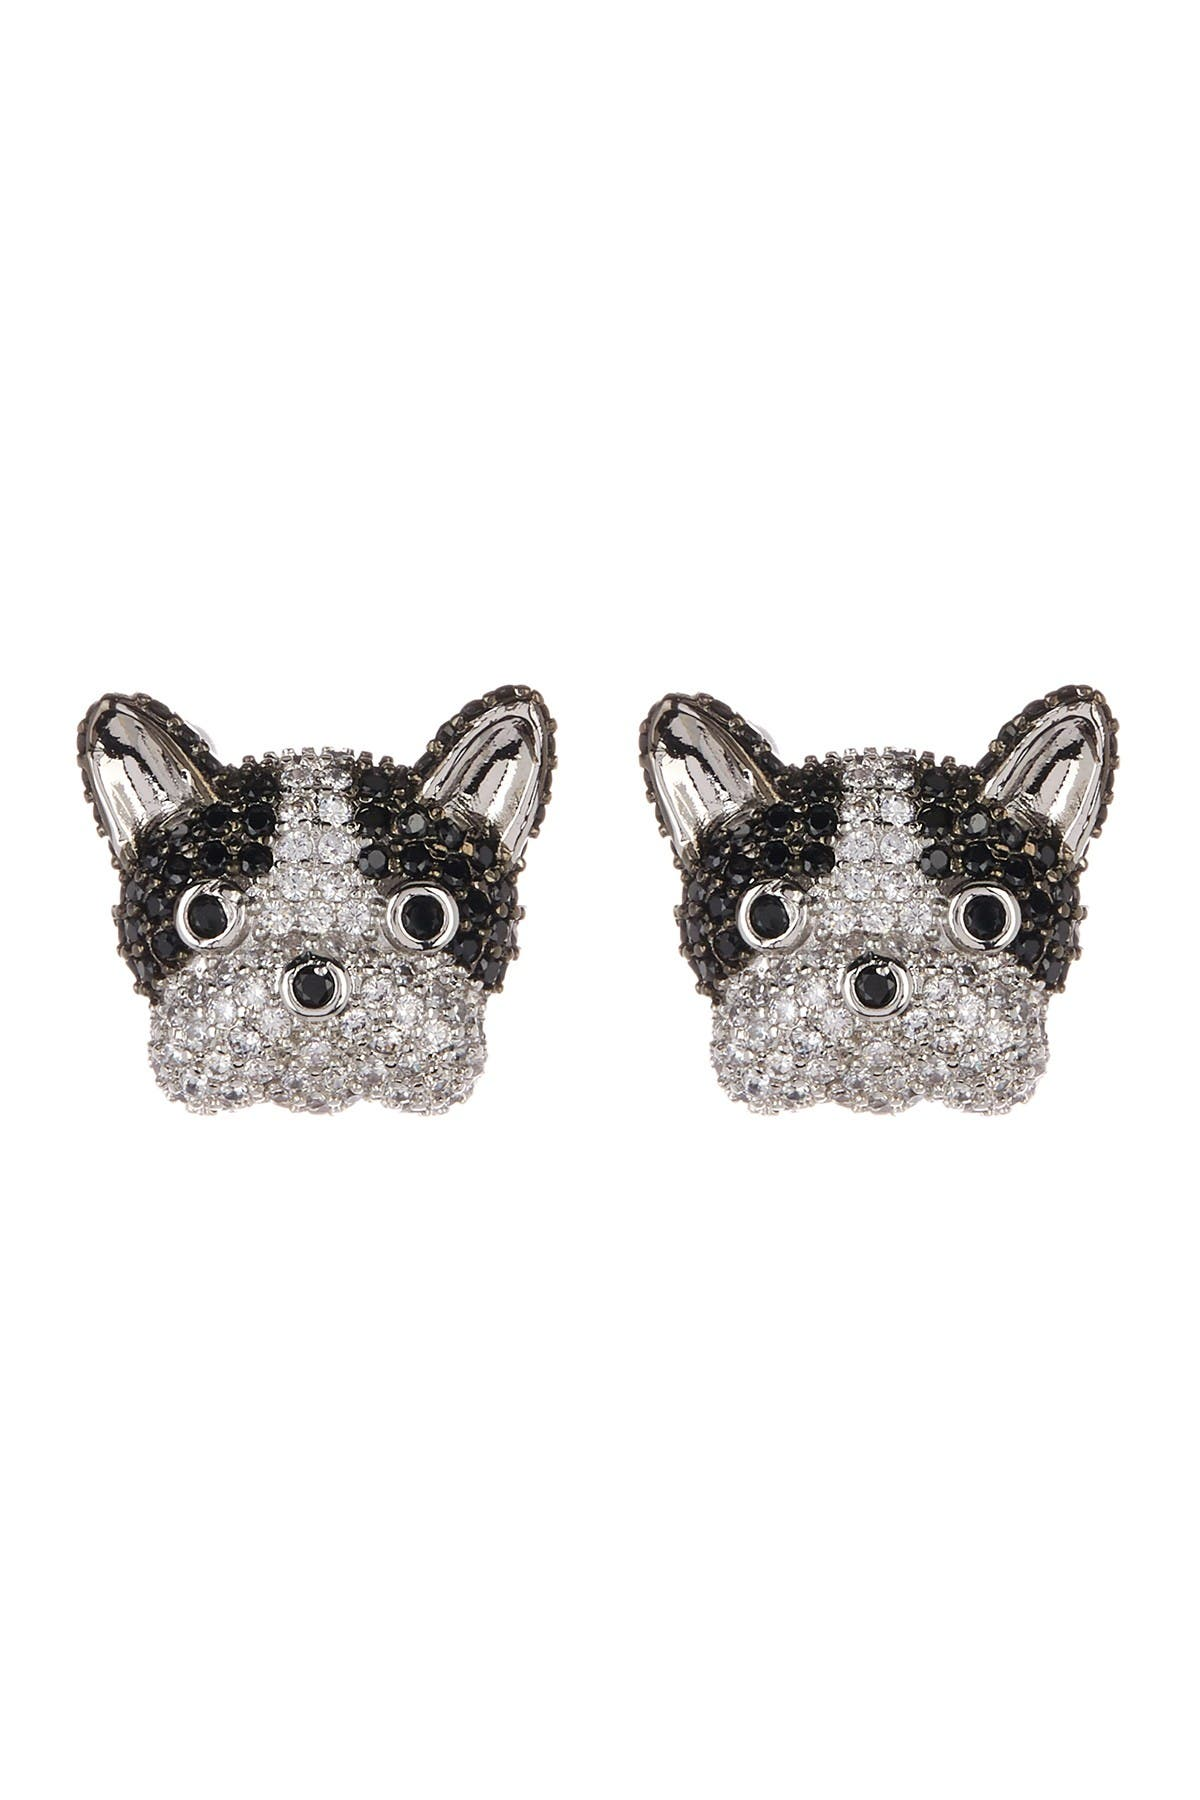 Image of Eye Candy Los Angeles Pave Crystal Frenchie Stud Earrings